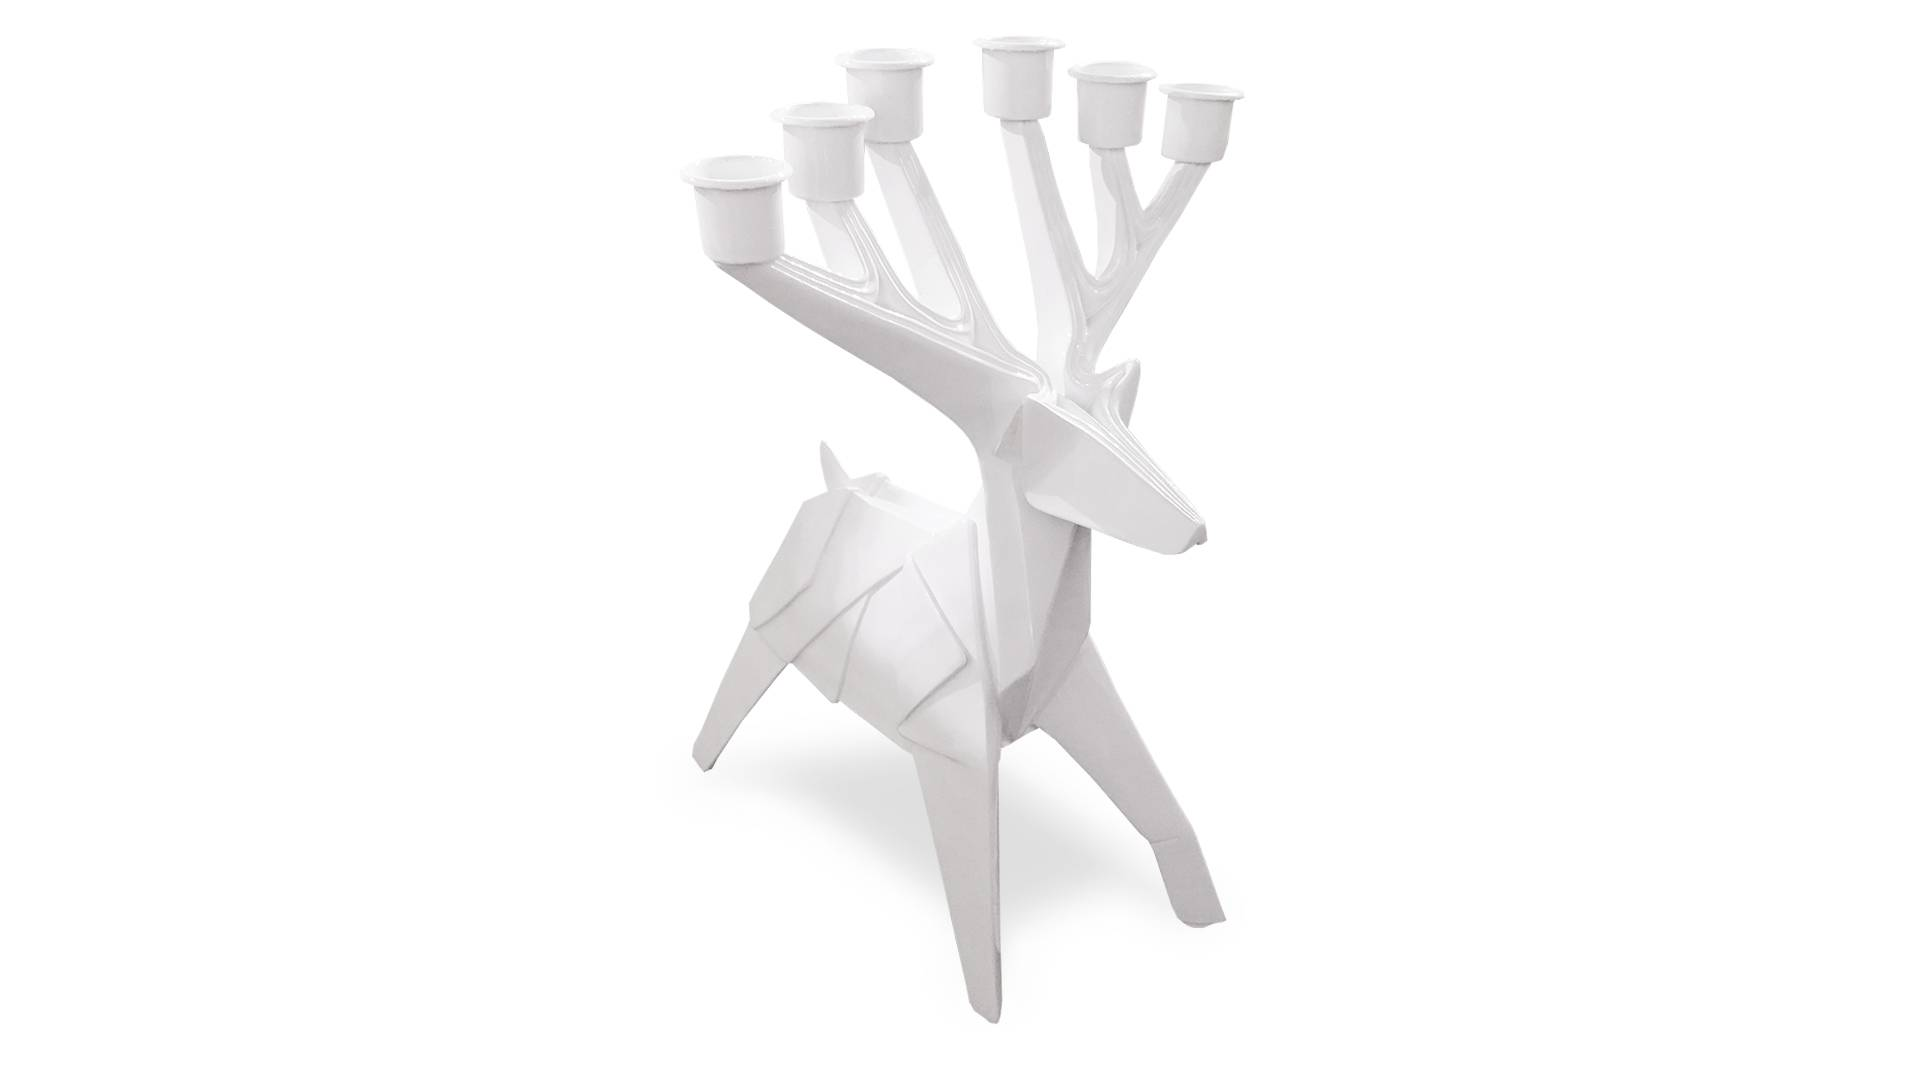 MobilierMoss Chandelier 6 branches style origami laqué blanc - Cerfy 5